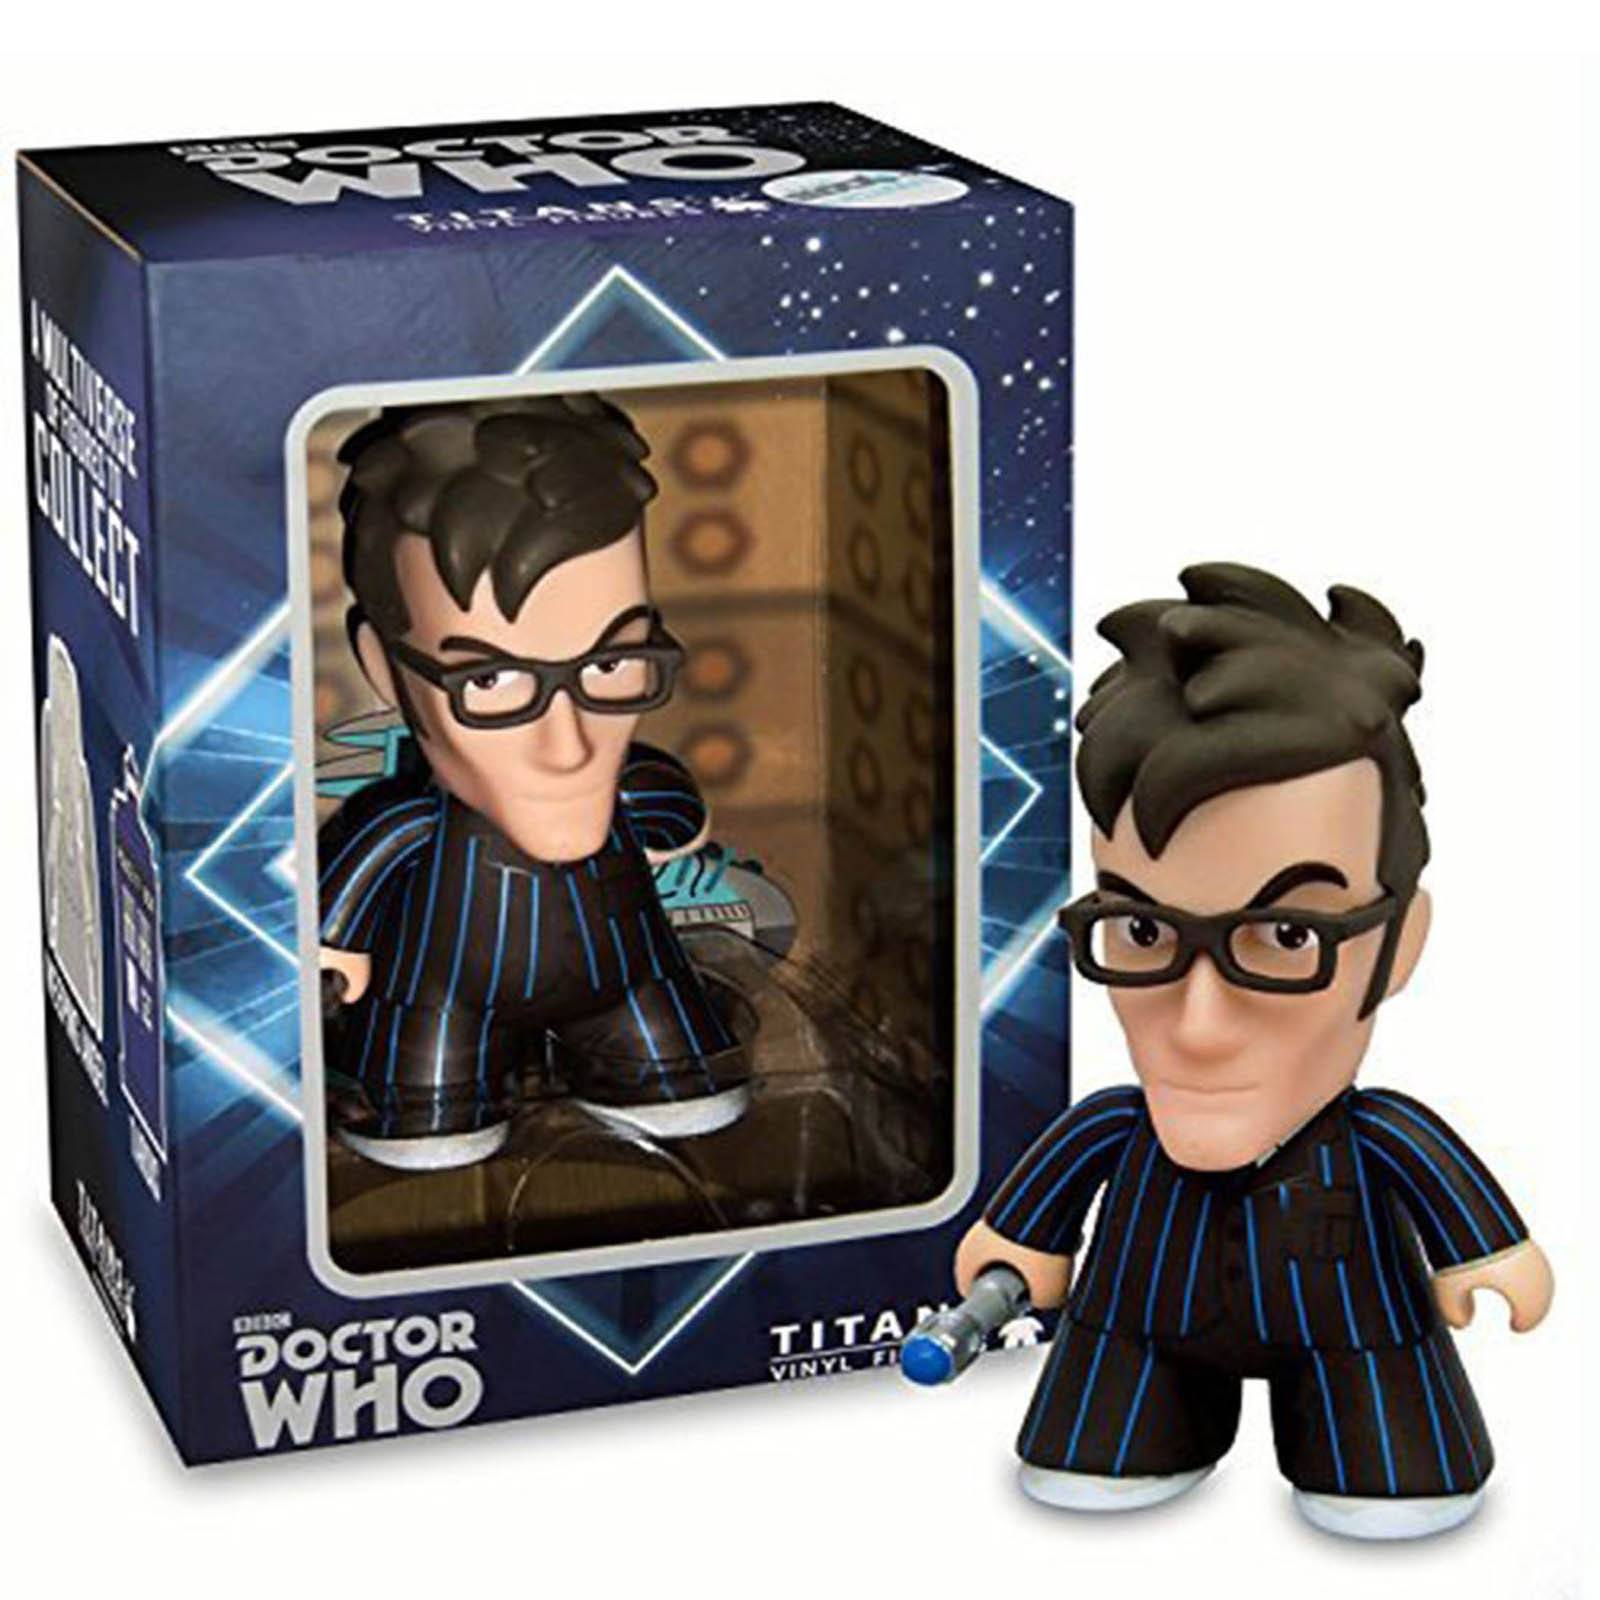 "TITANS DOCTOR WHO VINYL FIGURE /""10TH DOCTOR/"" 1 X BLIND BOX"